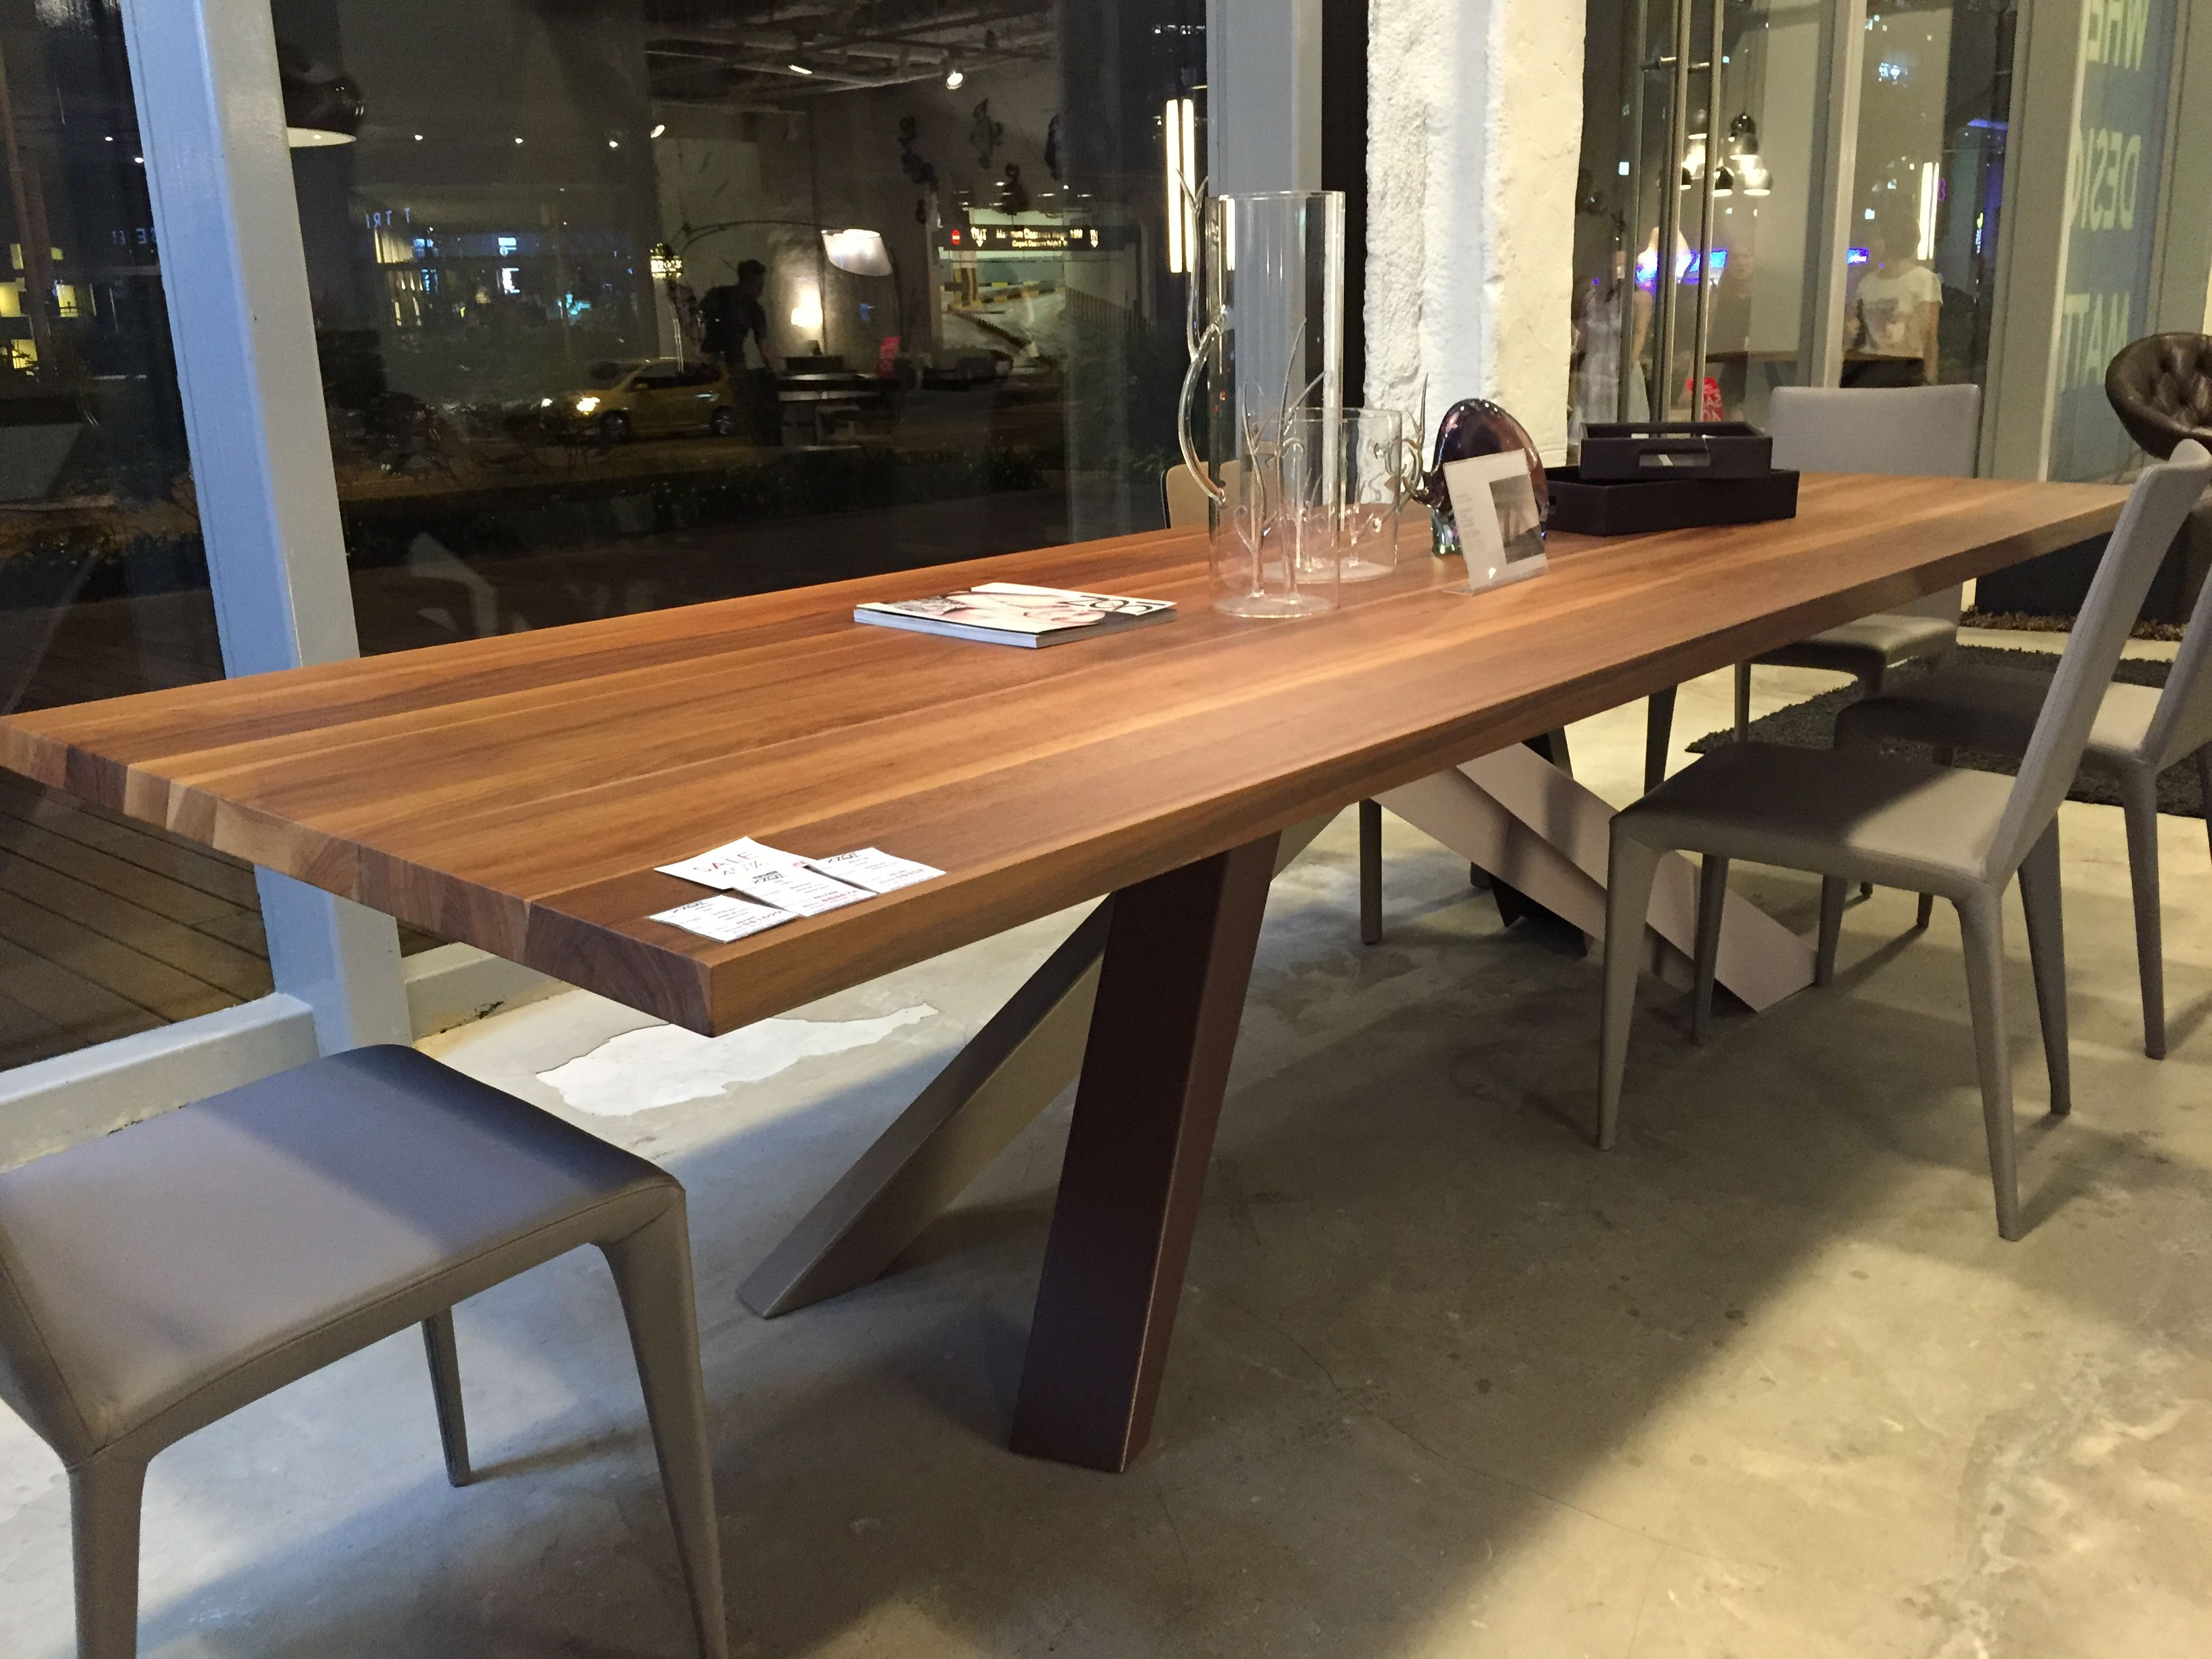 XZQT Solid American Walnut dining table | Dining | Pinterest ...